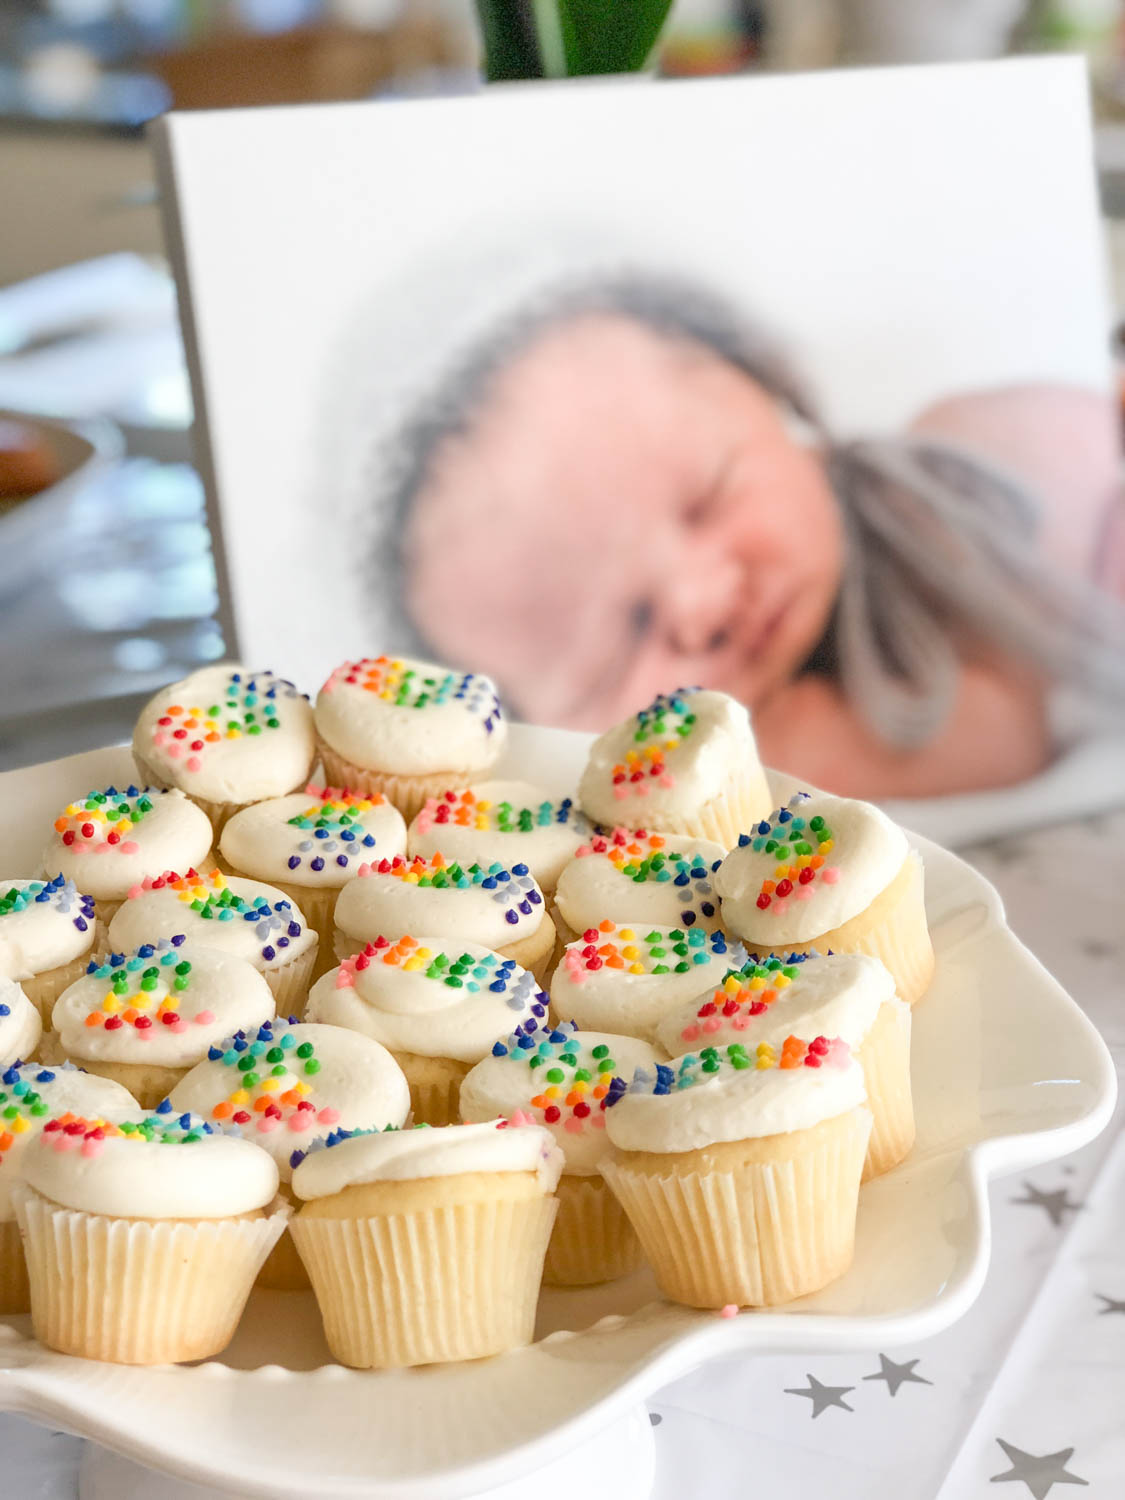 baby's first birthday aura birthday party baby party family time quality time love